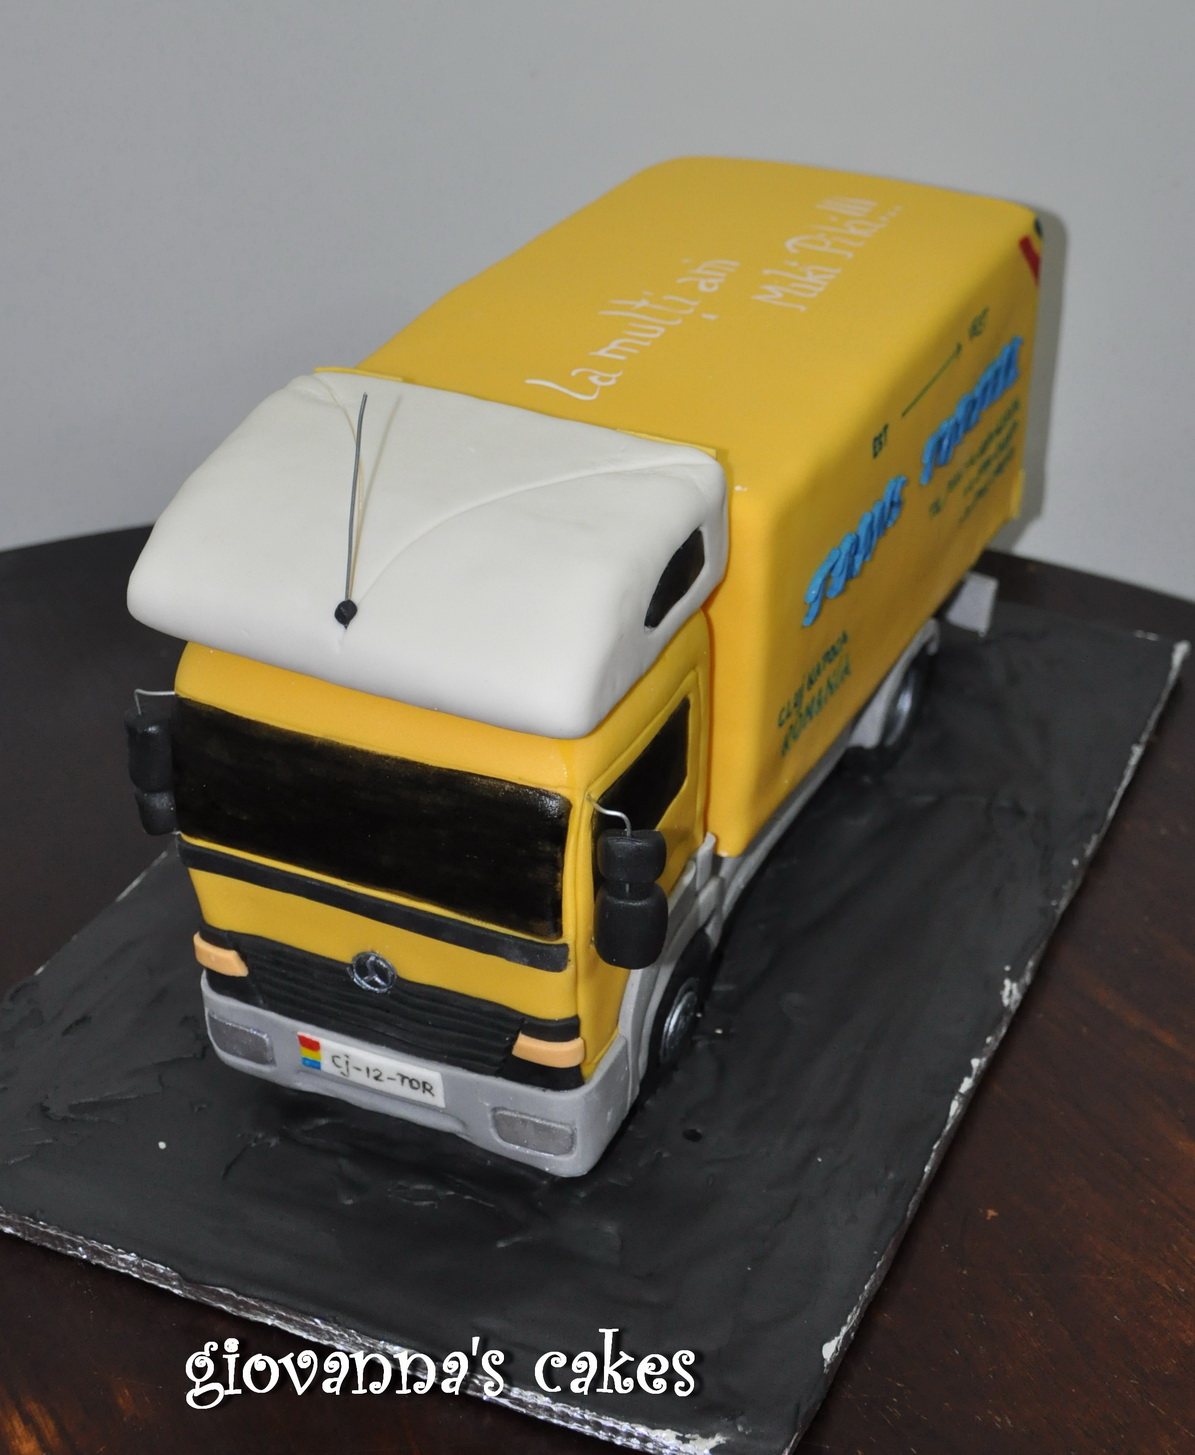 Giovanna 39 s cakes mercedes truck cake for Mercedes benz cake design